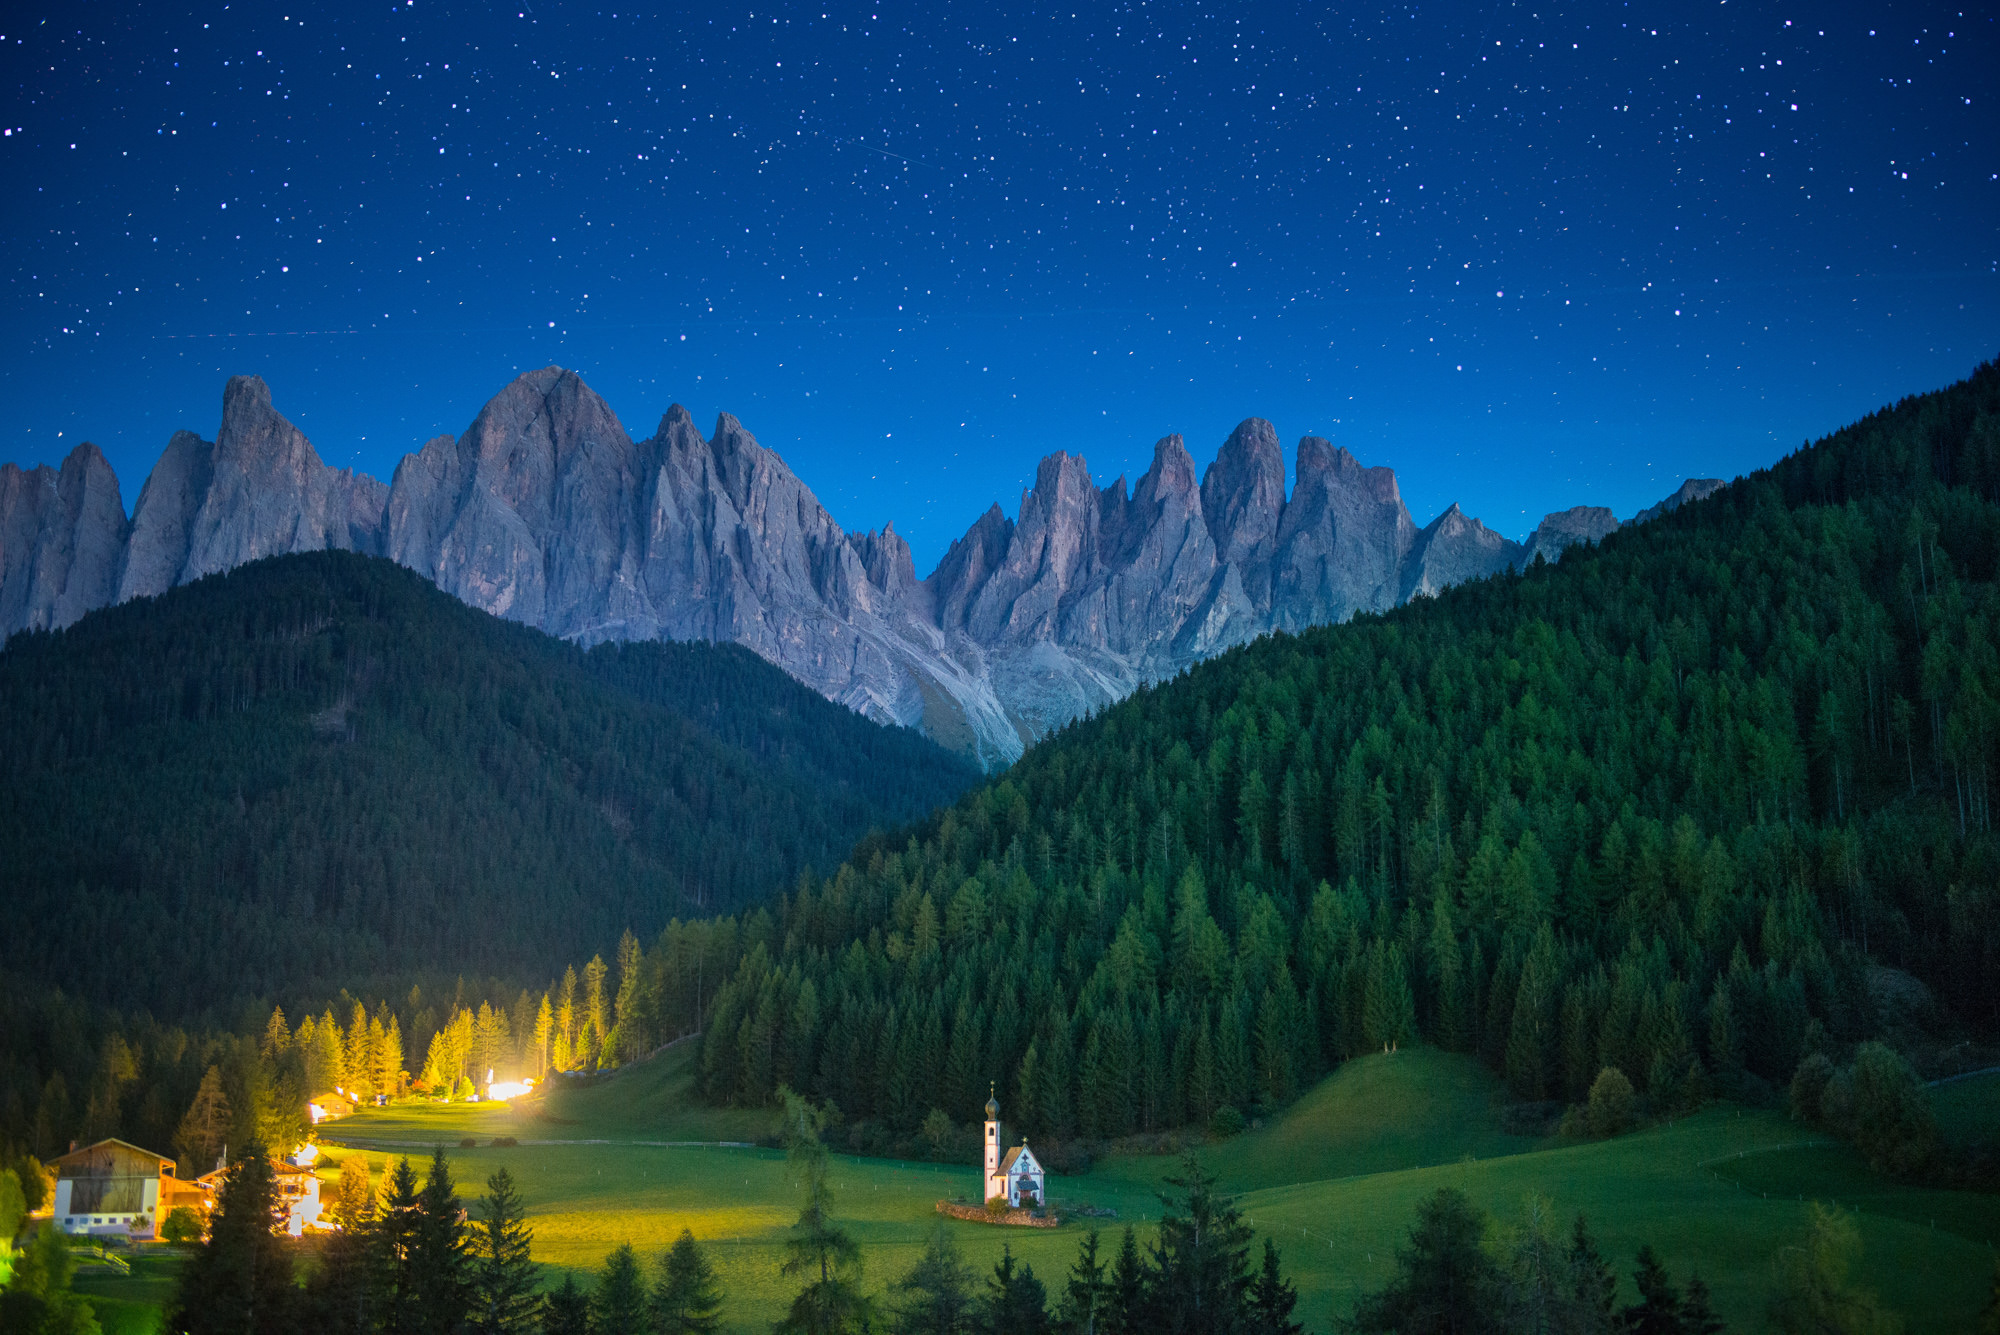 A lone church in a green meadow with huge mountains towering in the distance at night